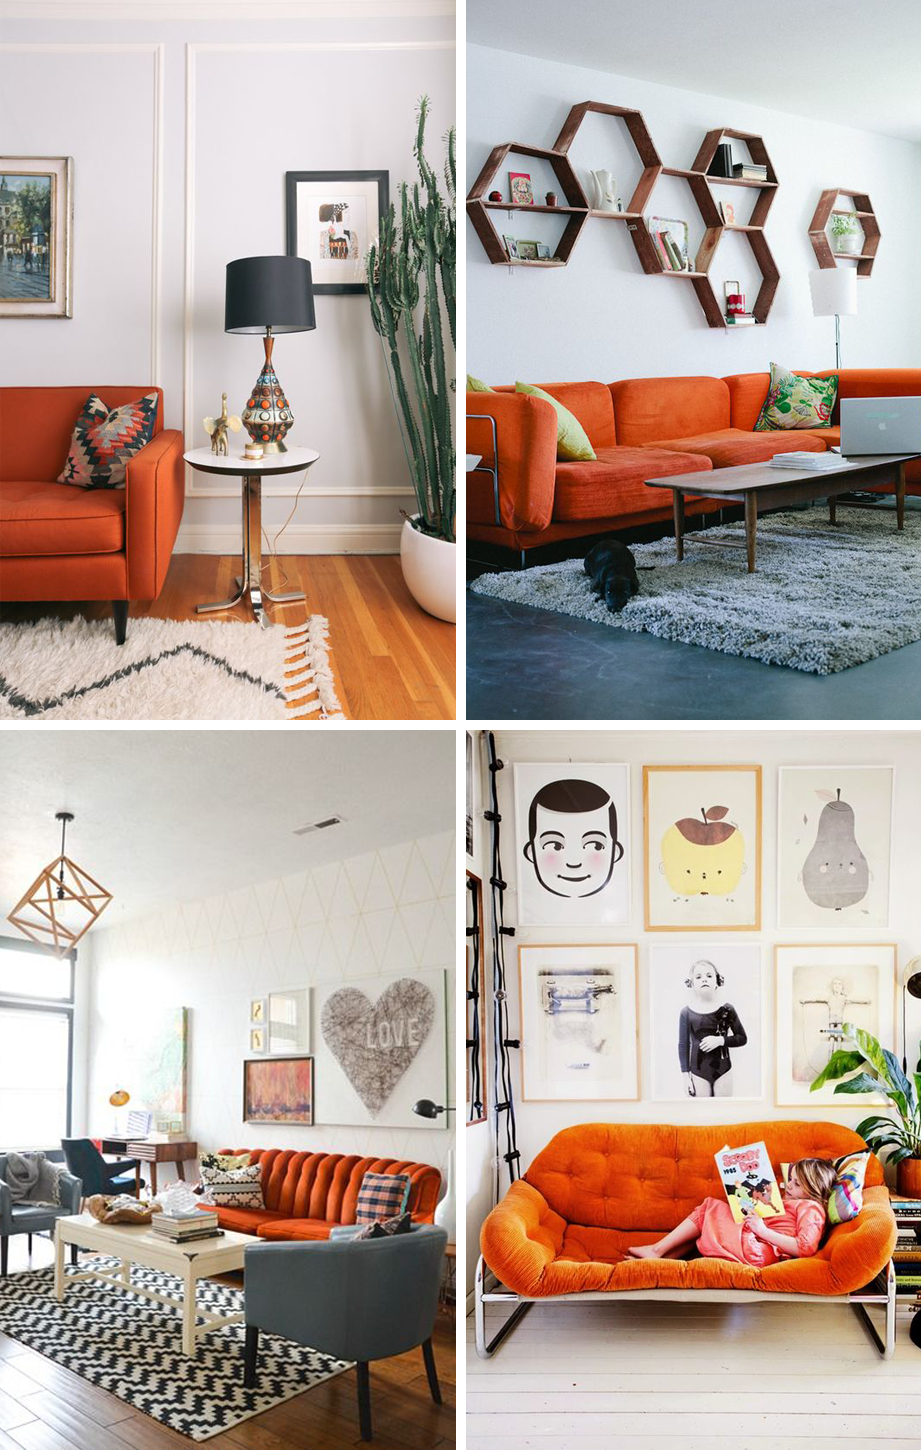 24 Colorful Couches That Make a Statement | Home Inspiration on orange velvet, orange mirror, orange room, orange leather couch, orange armchair, orange vacuum cleaner, orange door, orange knitted sweater, orange reception, orange recliner, orange basement, orange chaise, orange furniture, orange futon, orange couch and loveseat, orange dresser, orange table, orange couch pillows, orange wall, orange klippan loveseat covers,